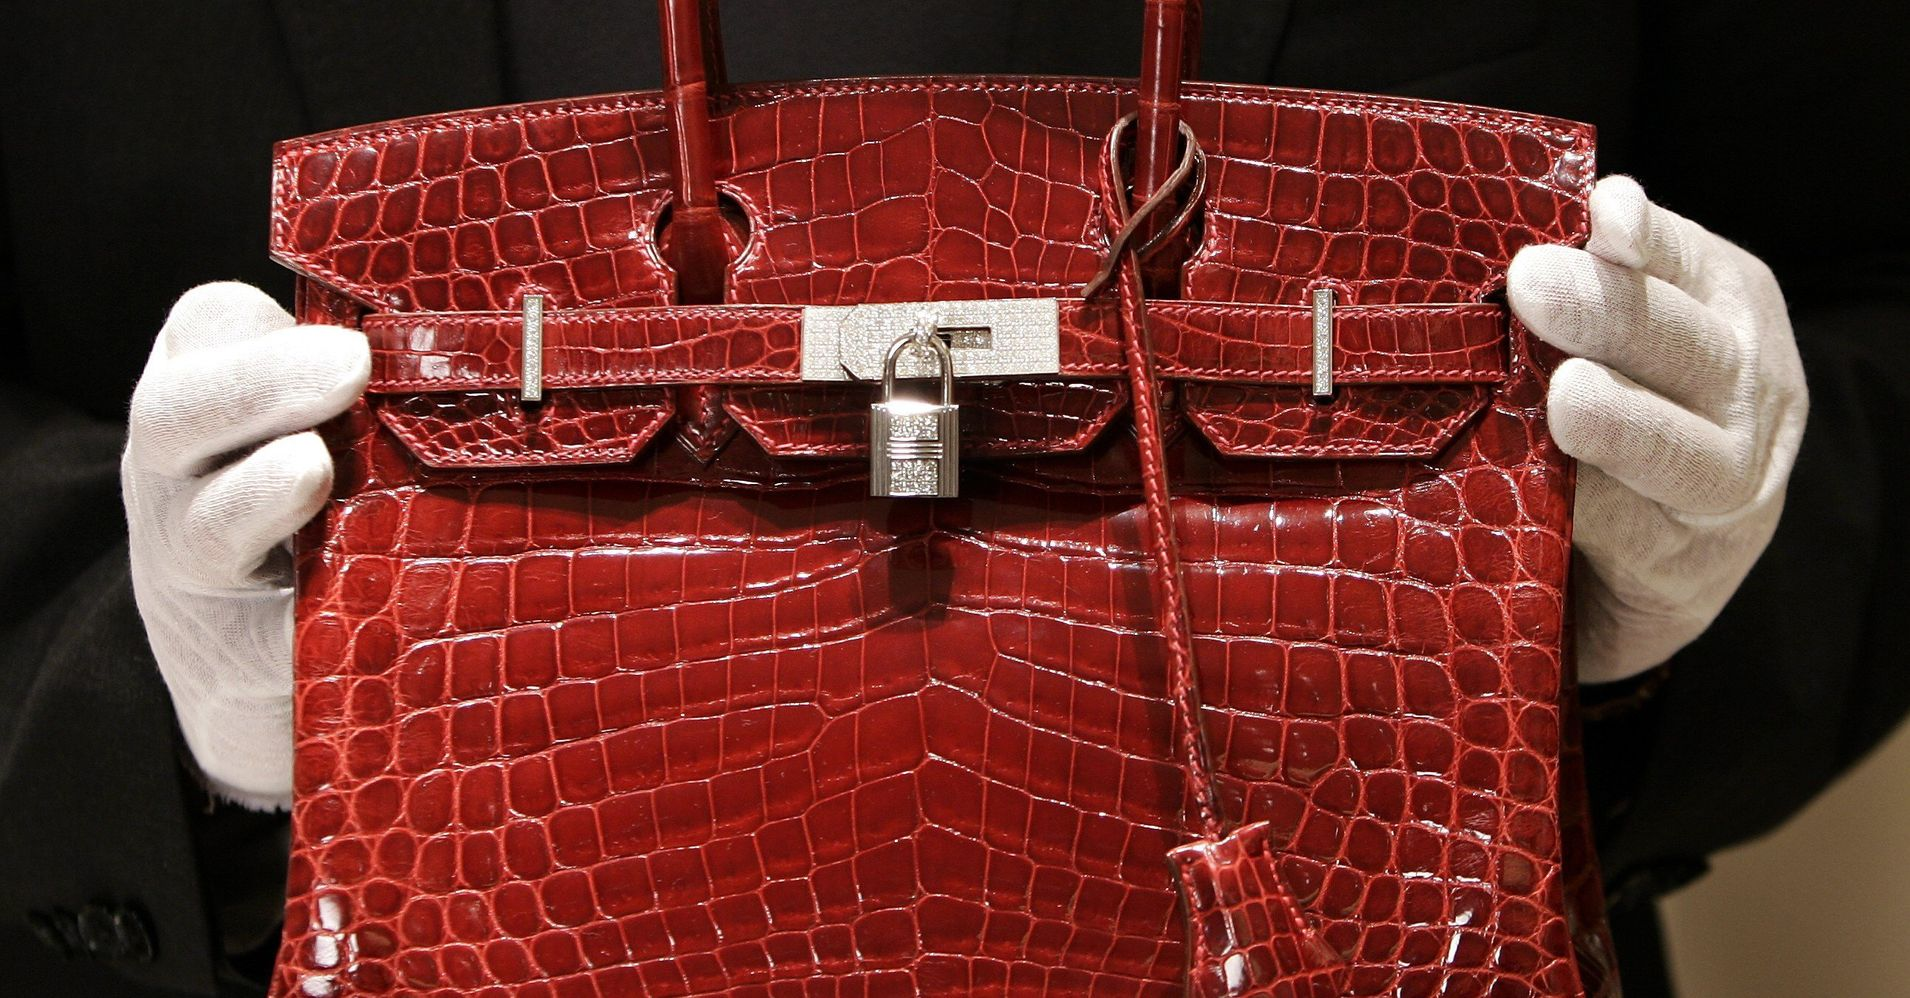 113c7eecb4 Hermes Handbags Are A Better Investment Than The Stock Market